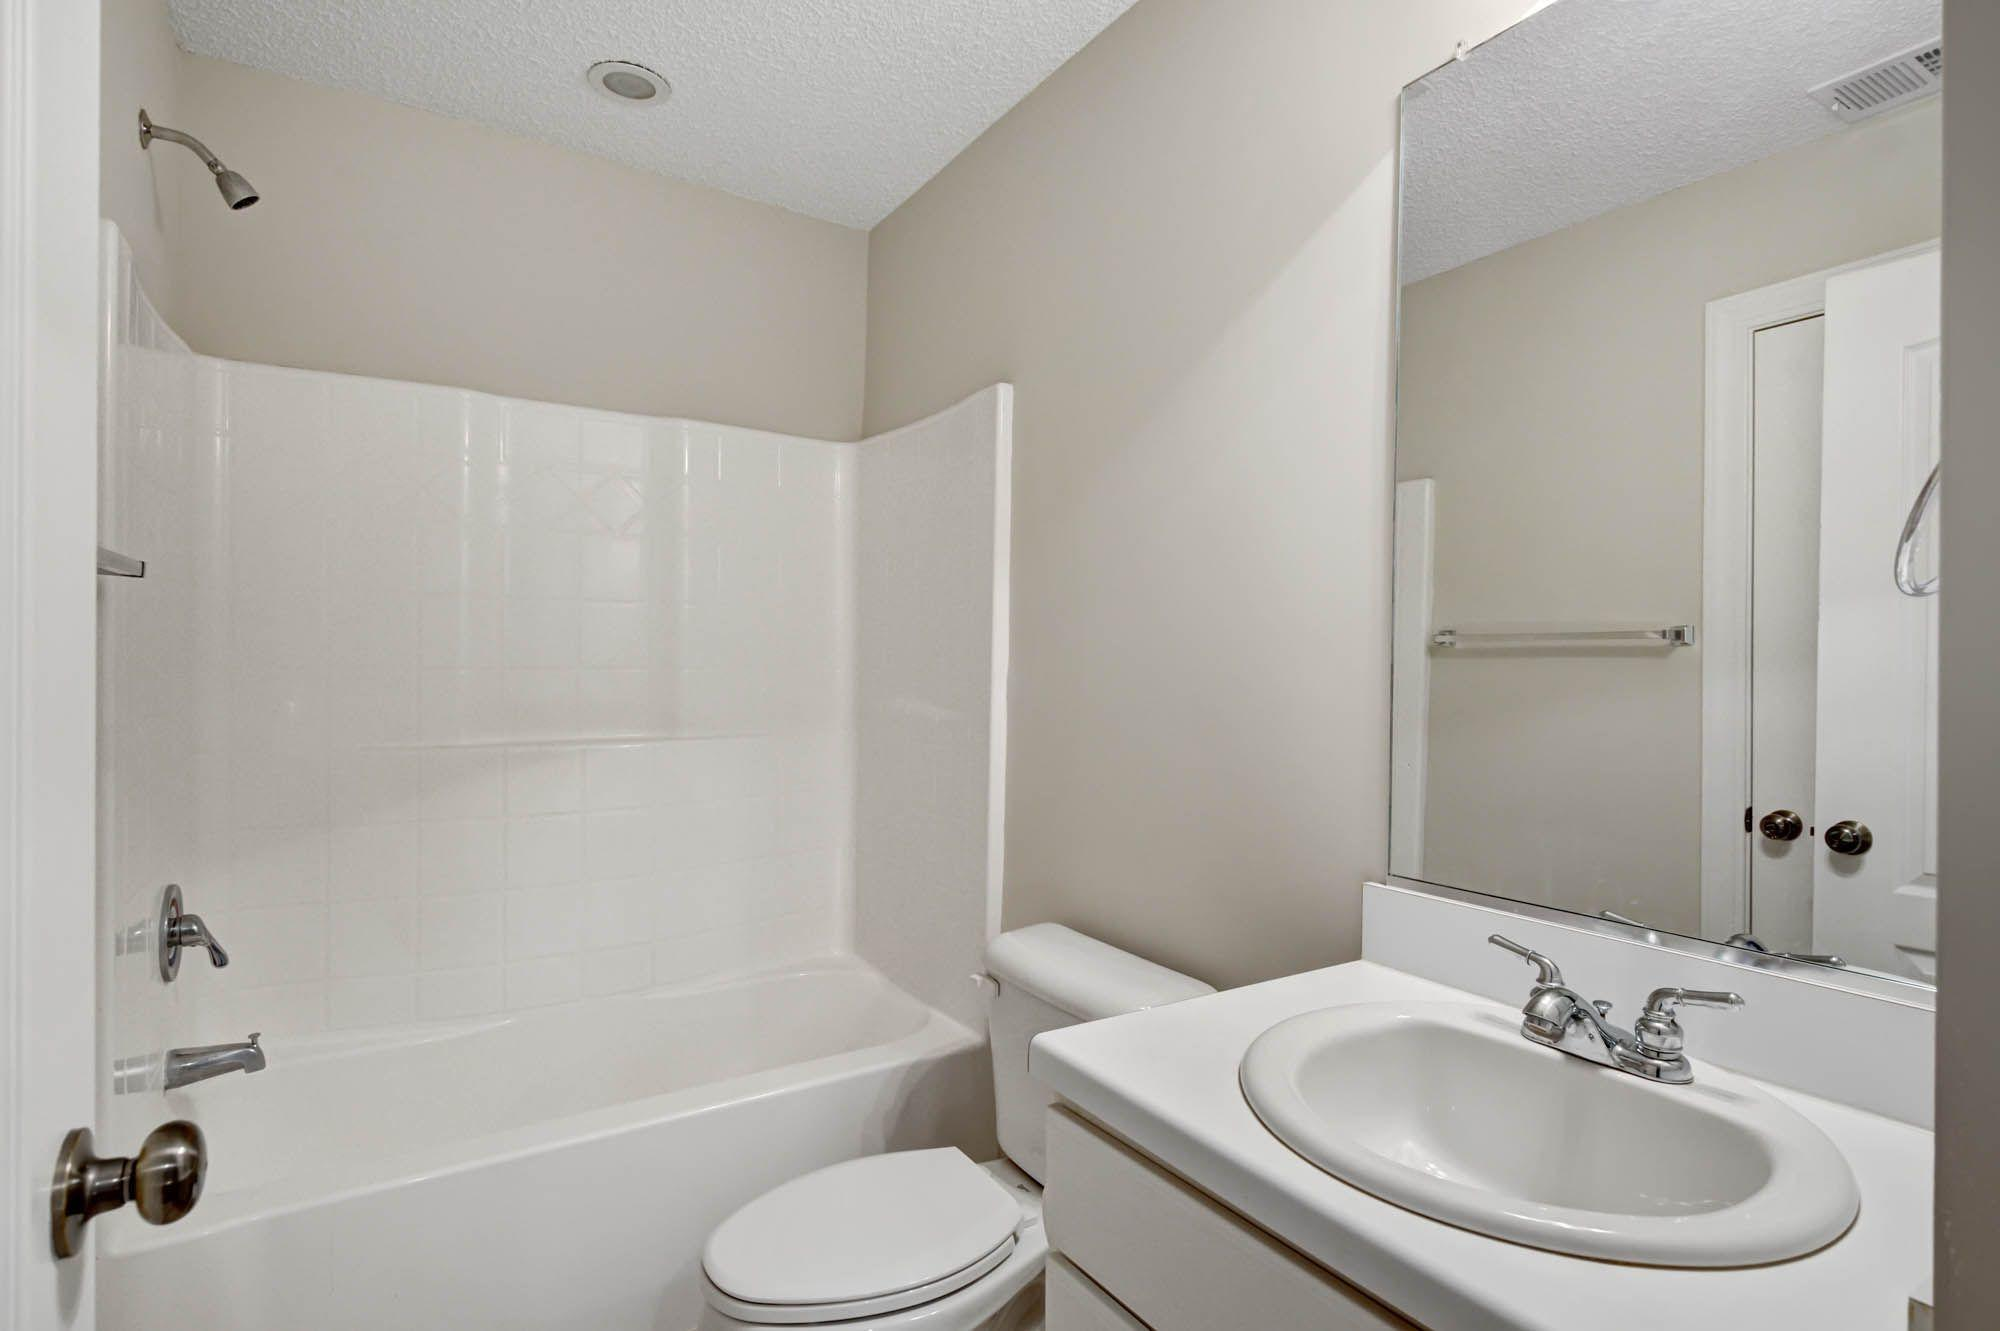 Whitney Lake Condos For Sale - 2926 Sugarberry, Johns Island, SC - 9